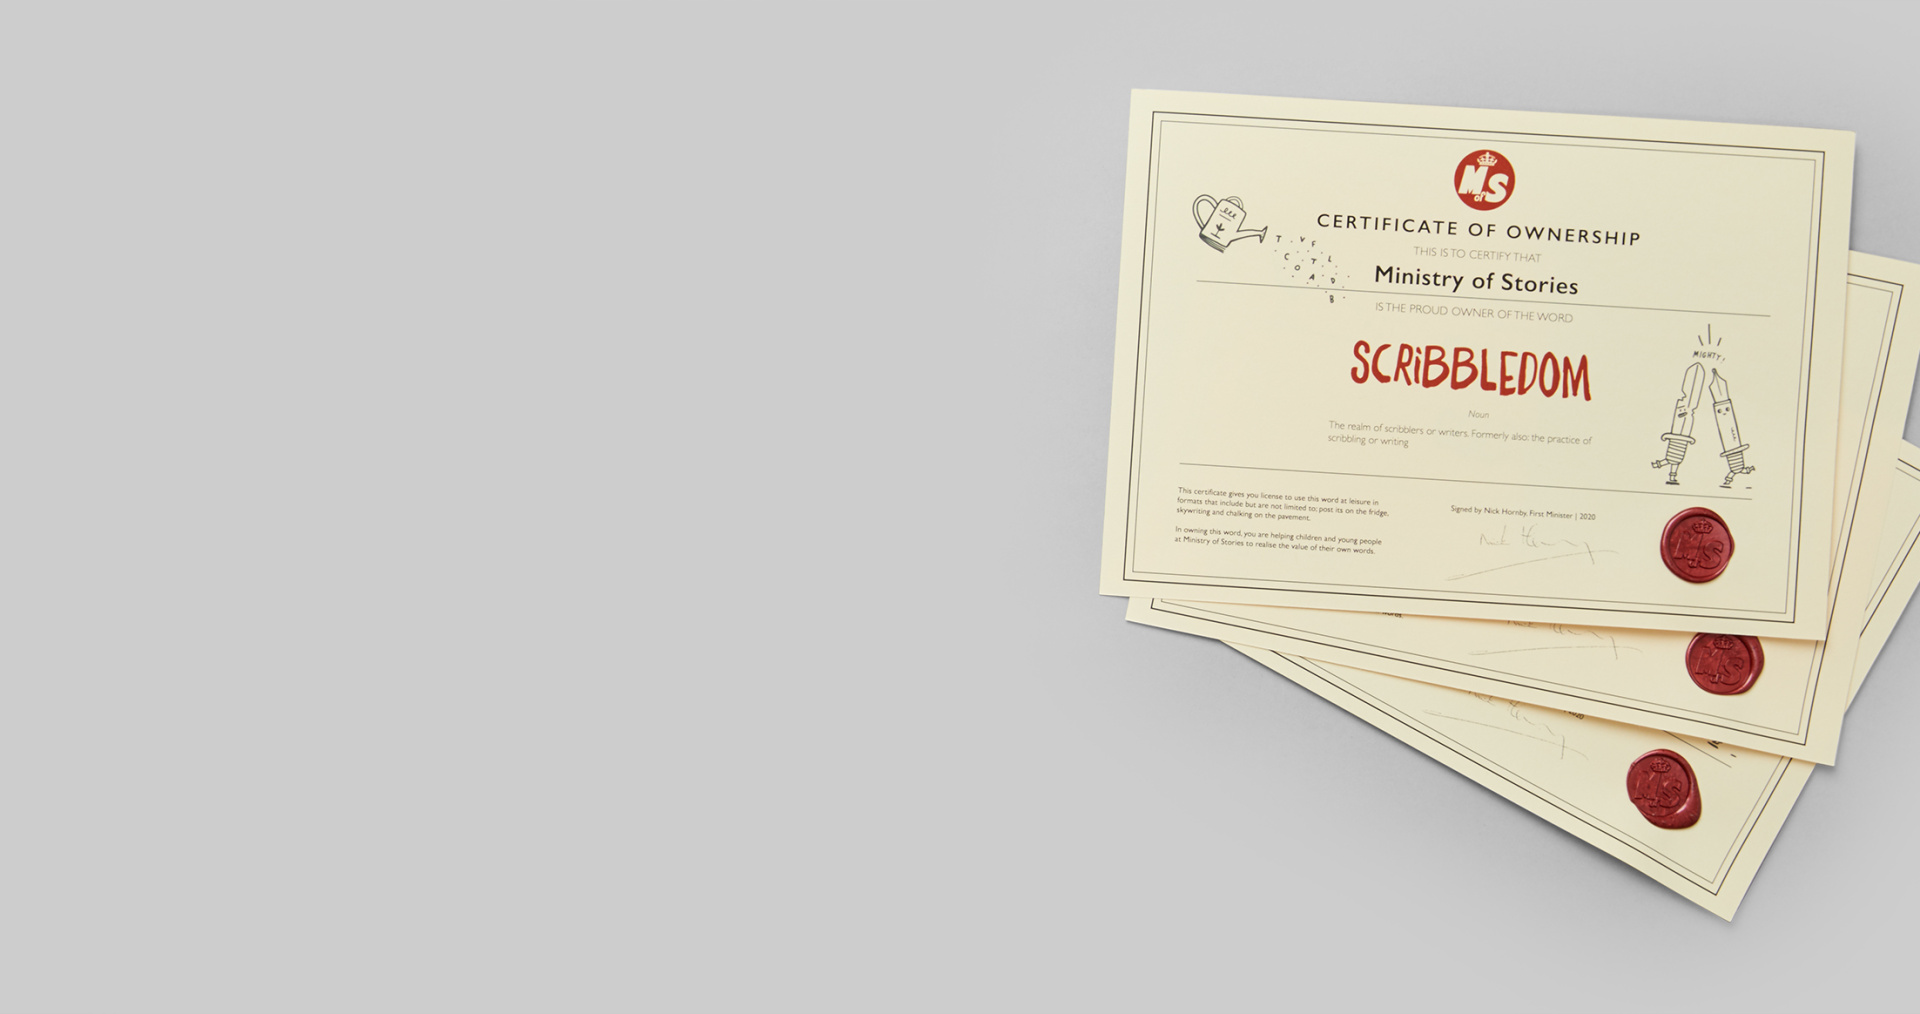 Wax sealed certificate featuring the word Scribbledom